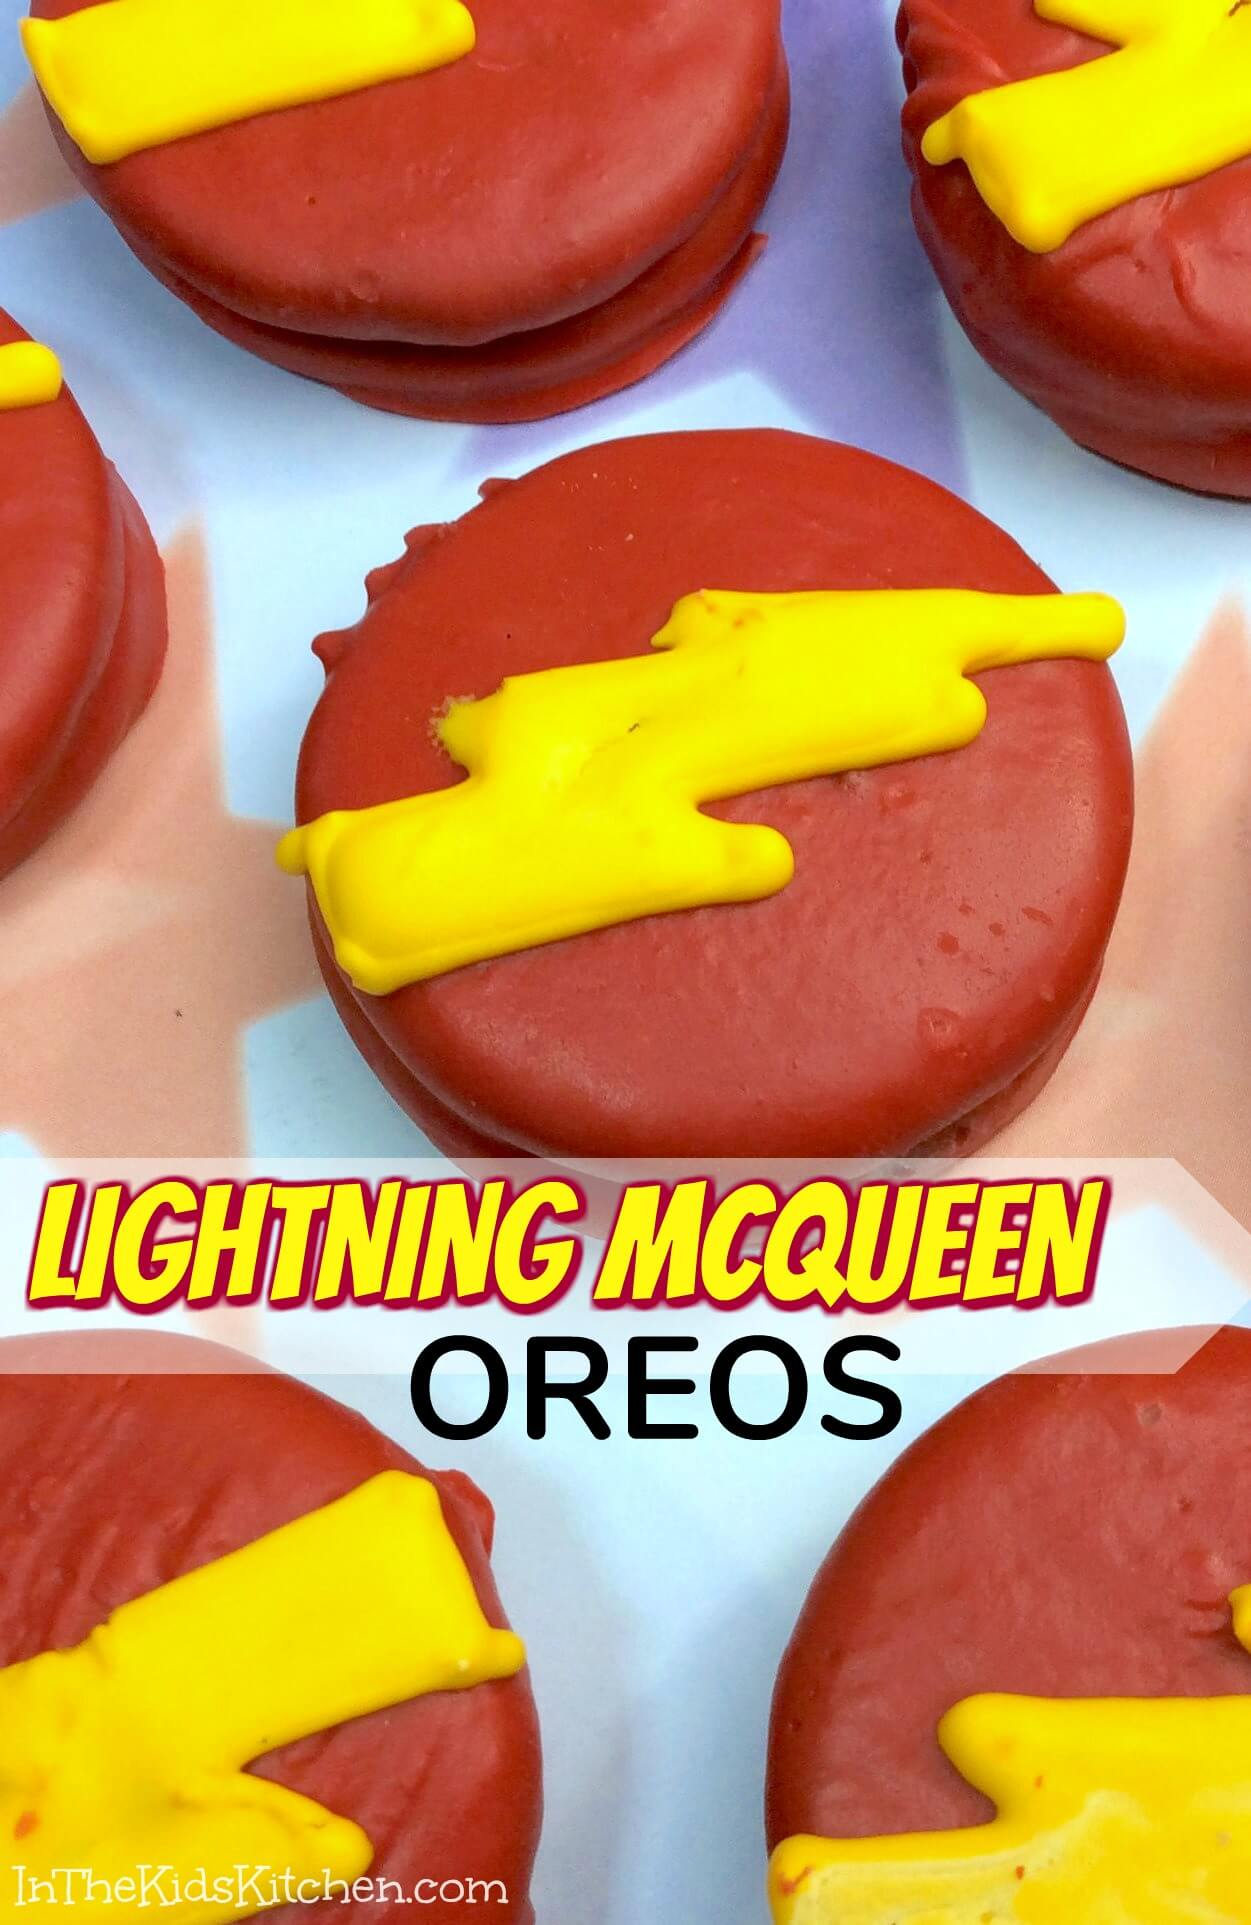 If you have a Cars fan in your house, then these colorful Lightning McQueen Oreos are a guaranteed hit! Perfect kids birthday party treat!